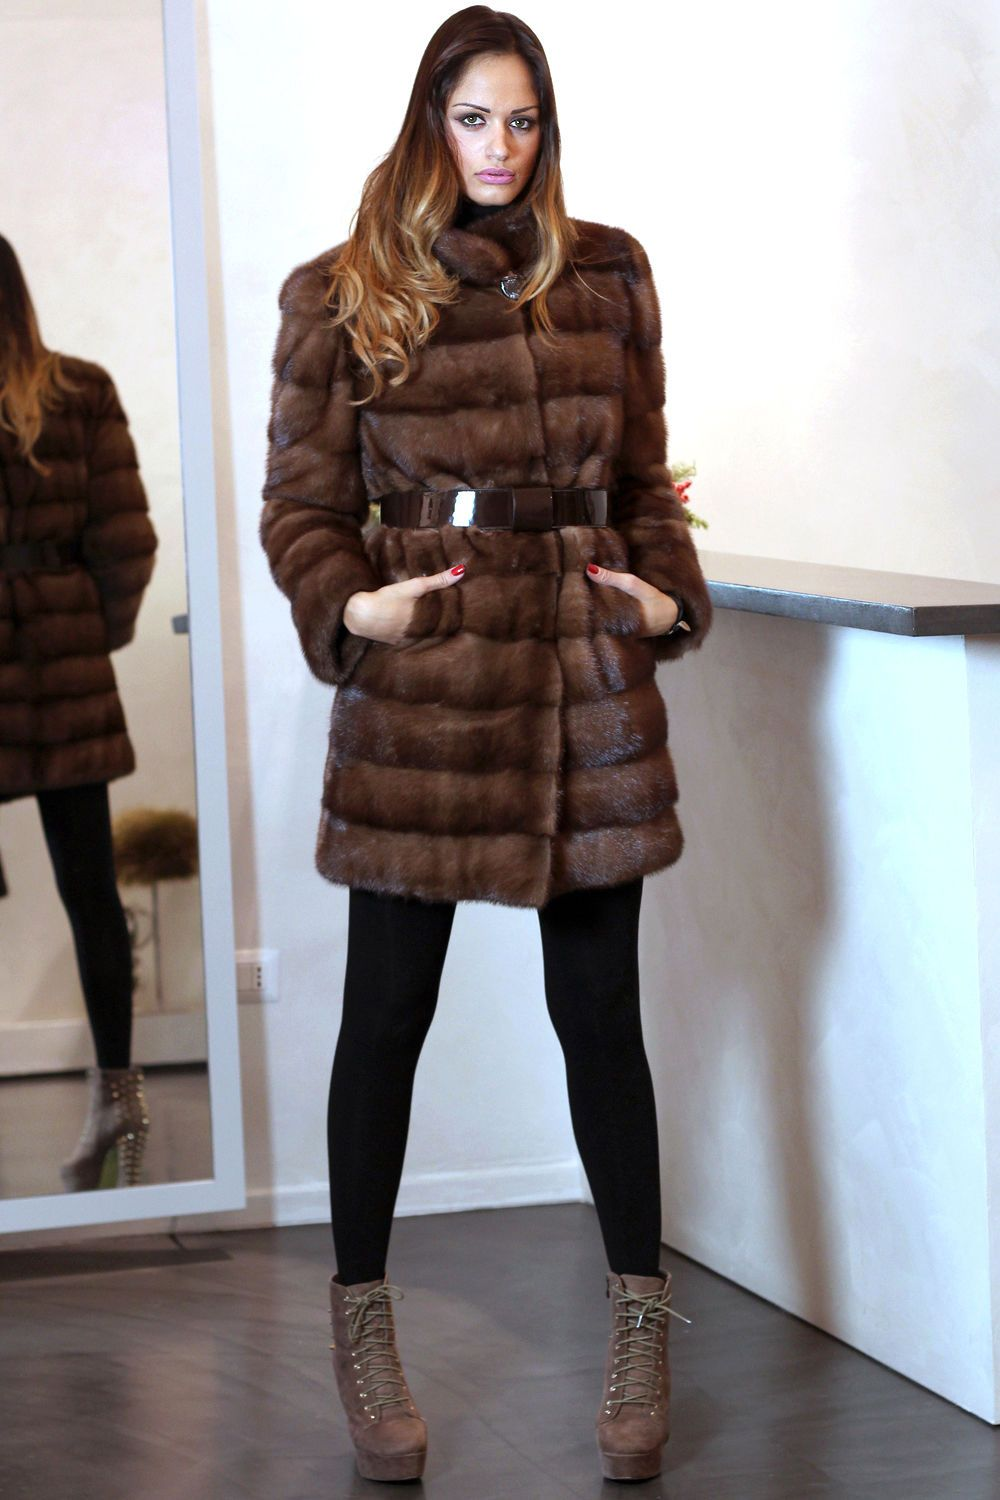 sports shoes a1bb3 26346 PELZ PELZMANTEL MANTEL NERZ JACKE FUR COAT MINK PELLICCIA ...